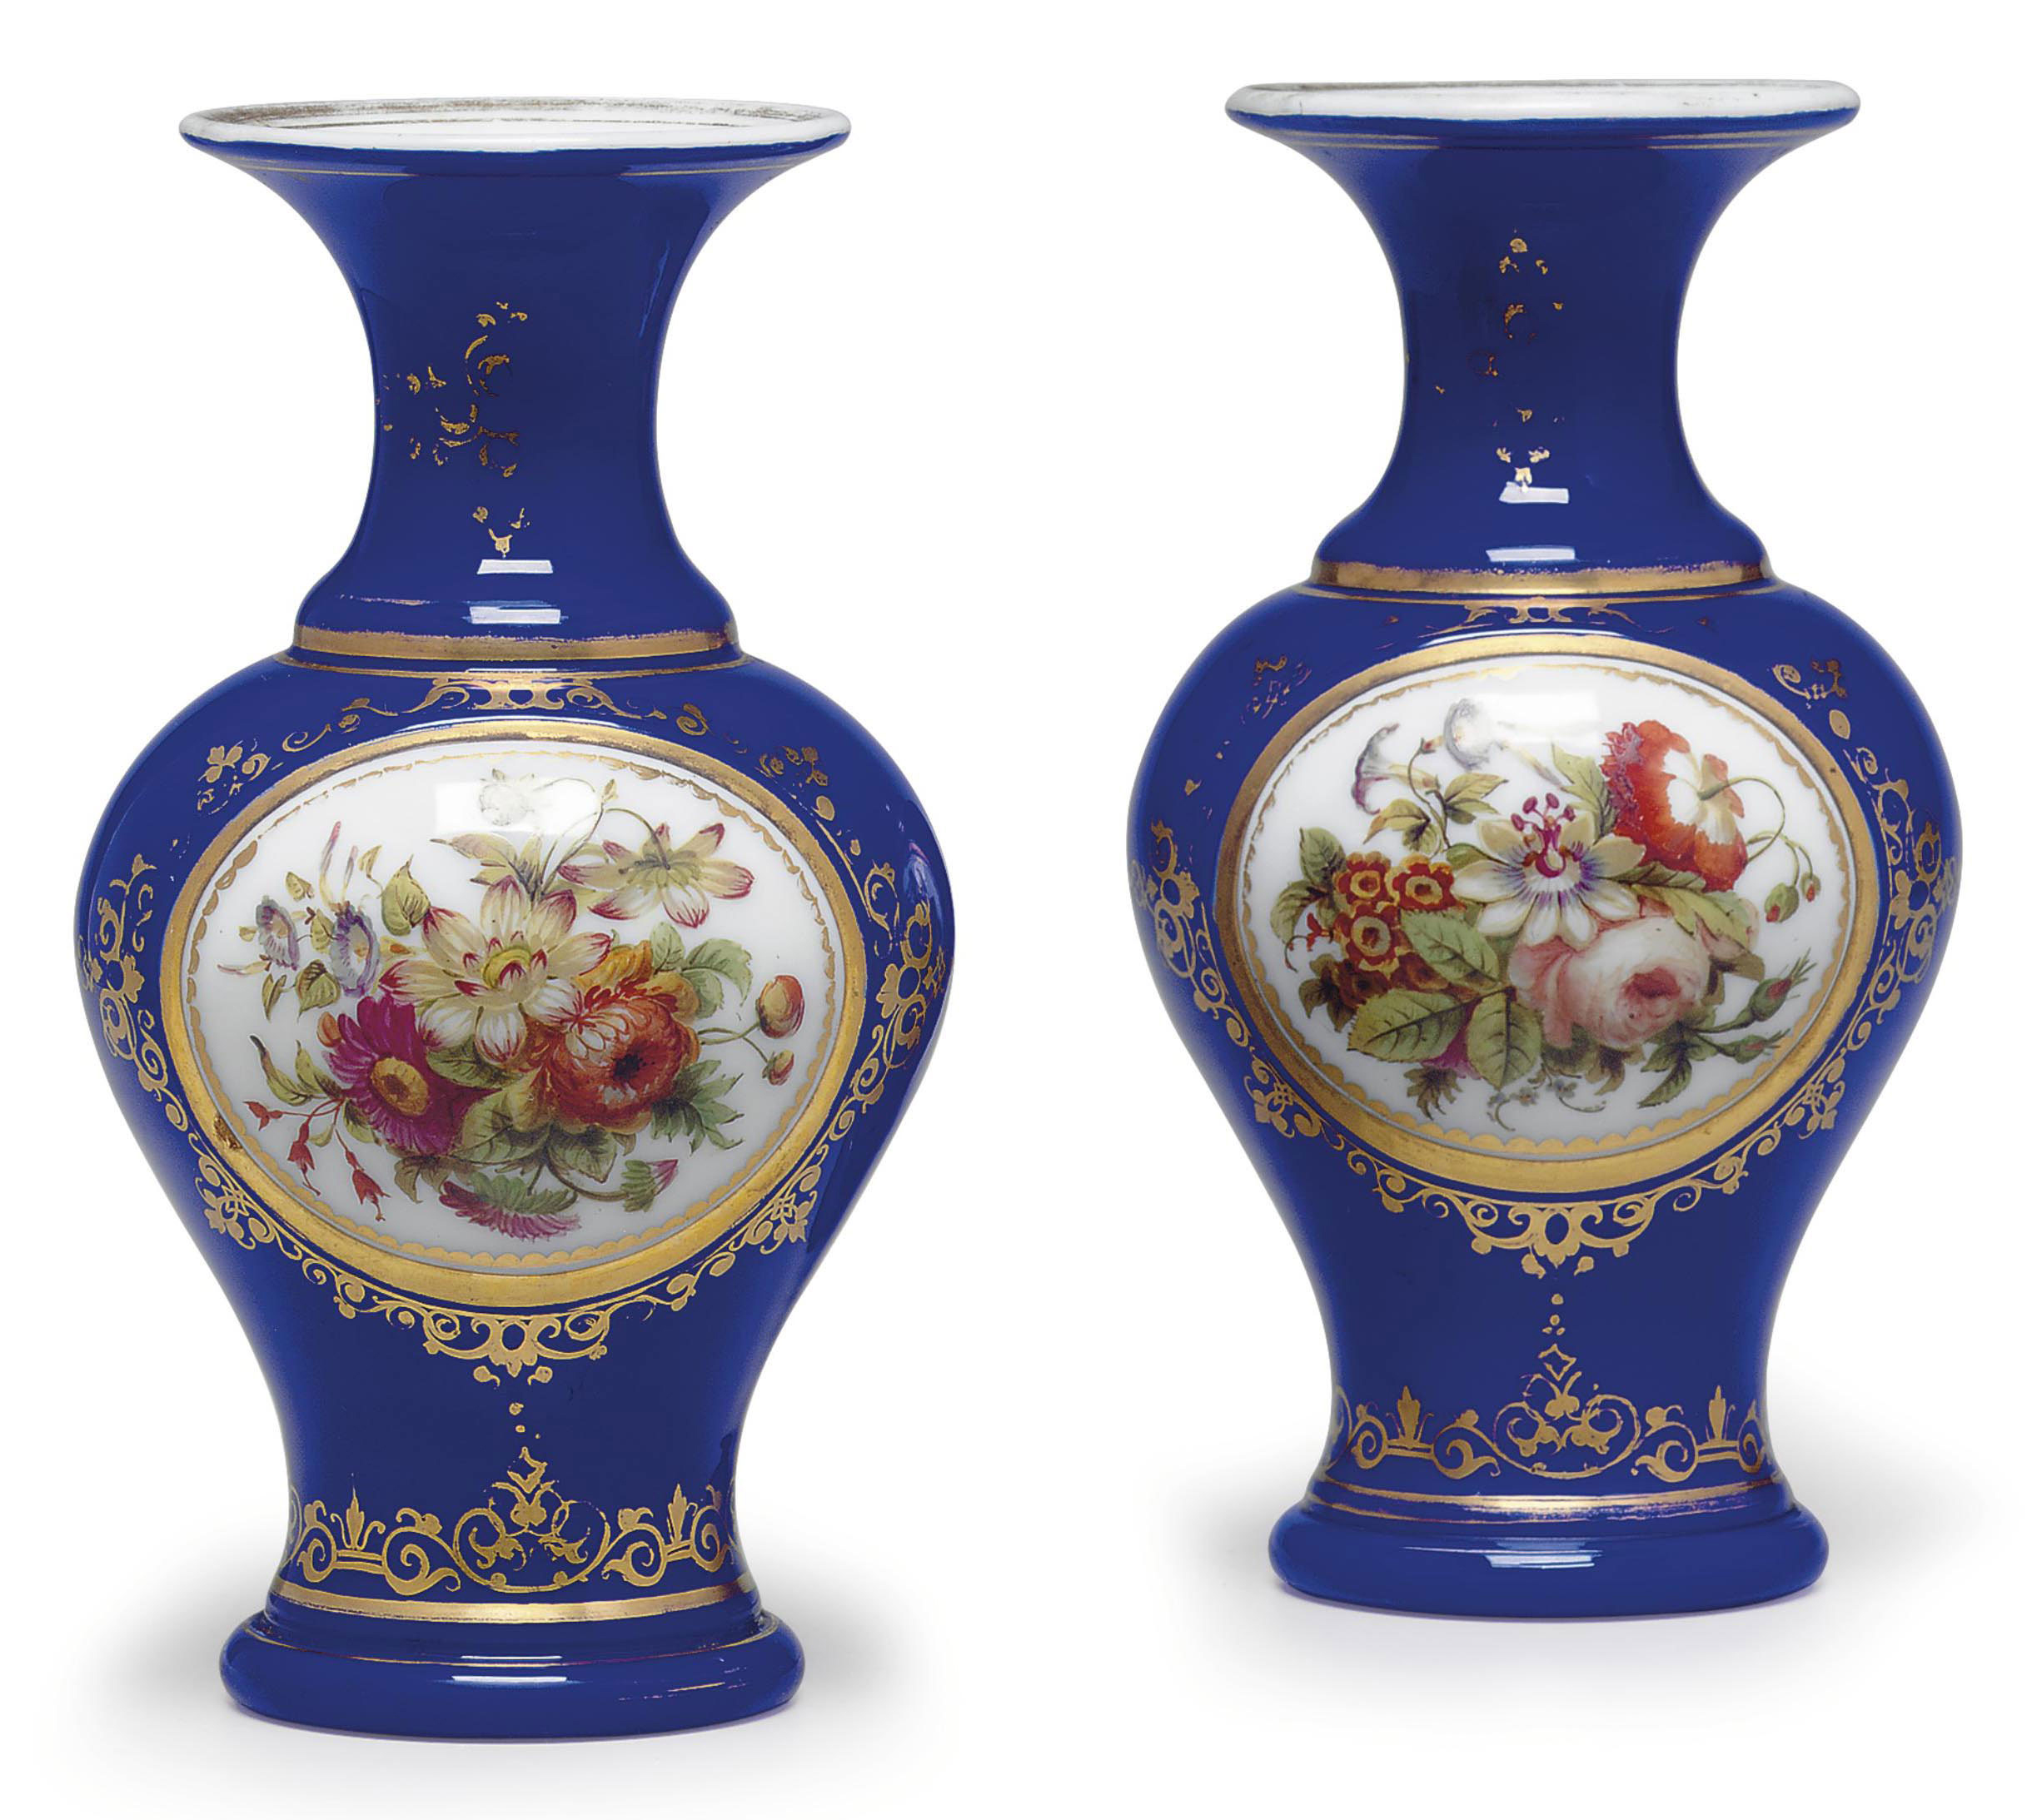 A SMALL PAIR OF BACCARAT OPAQU